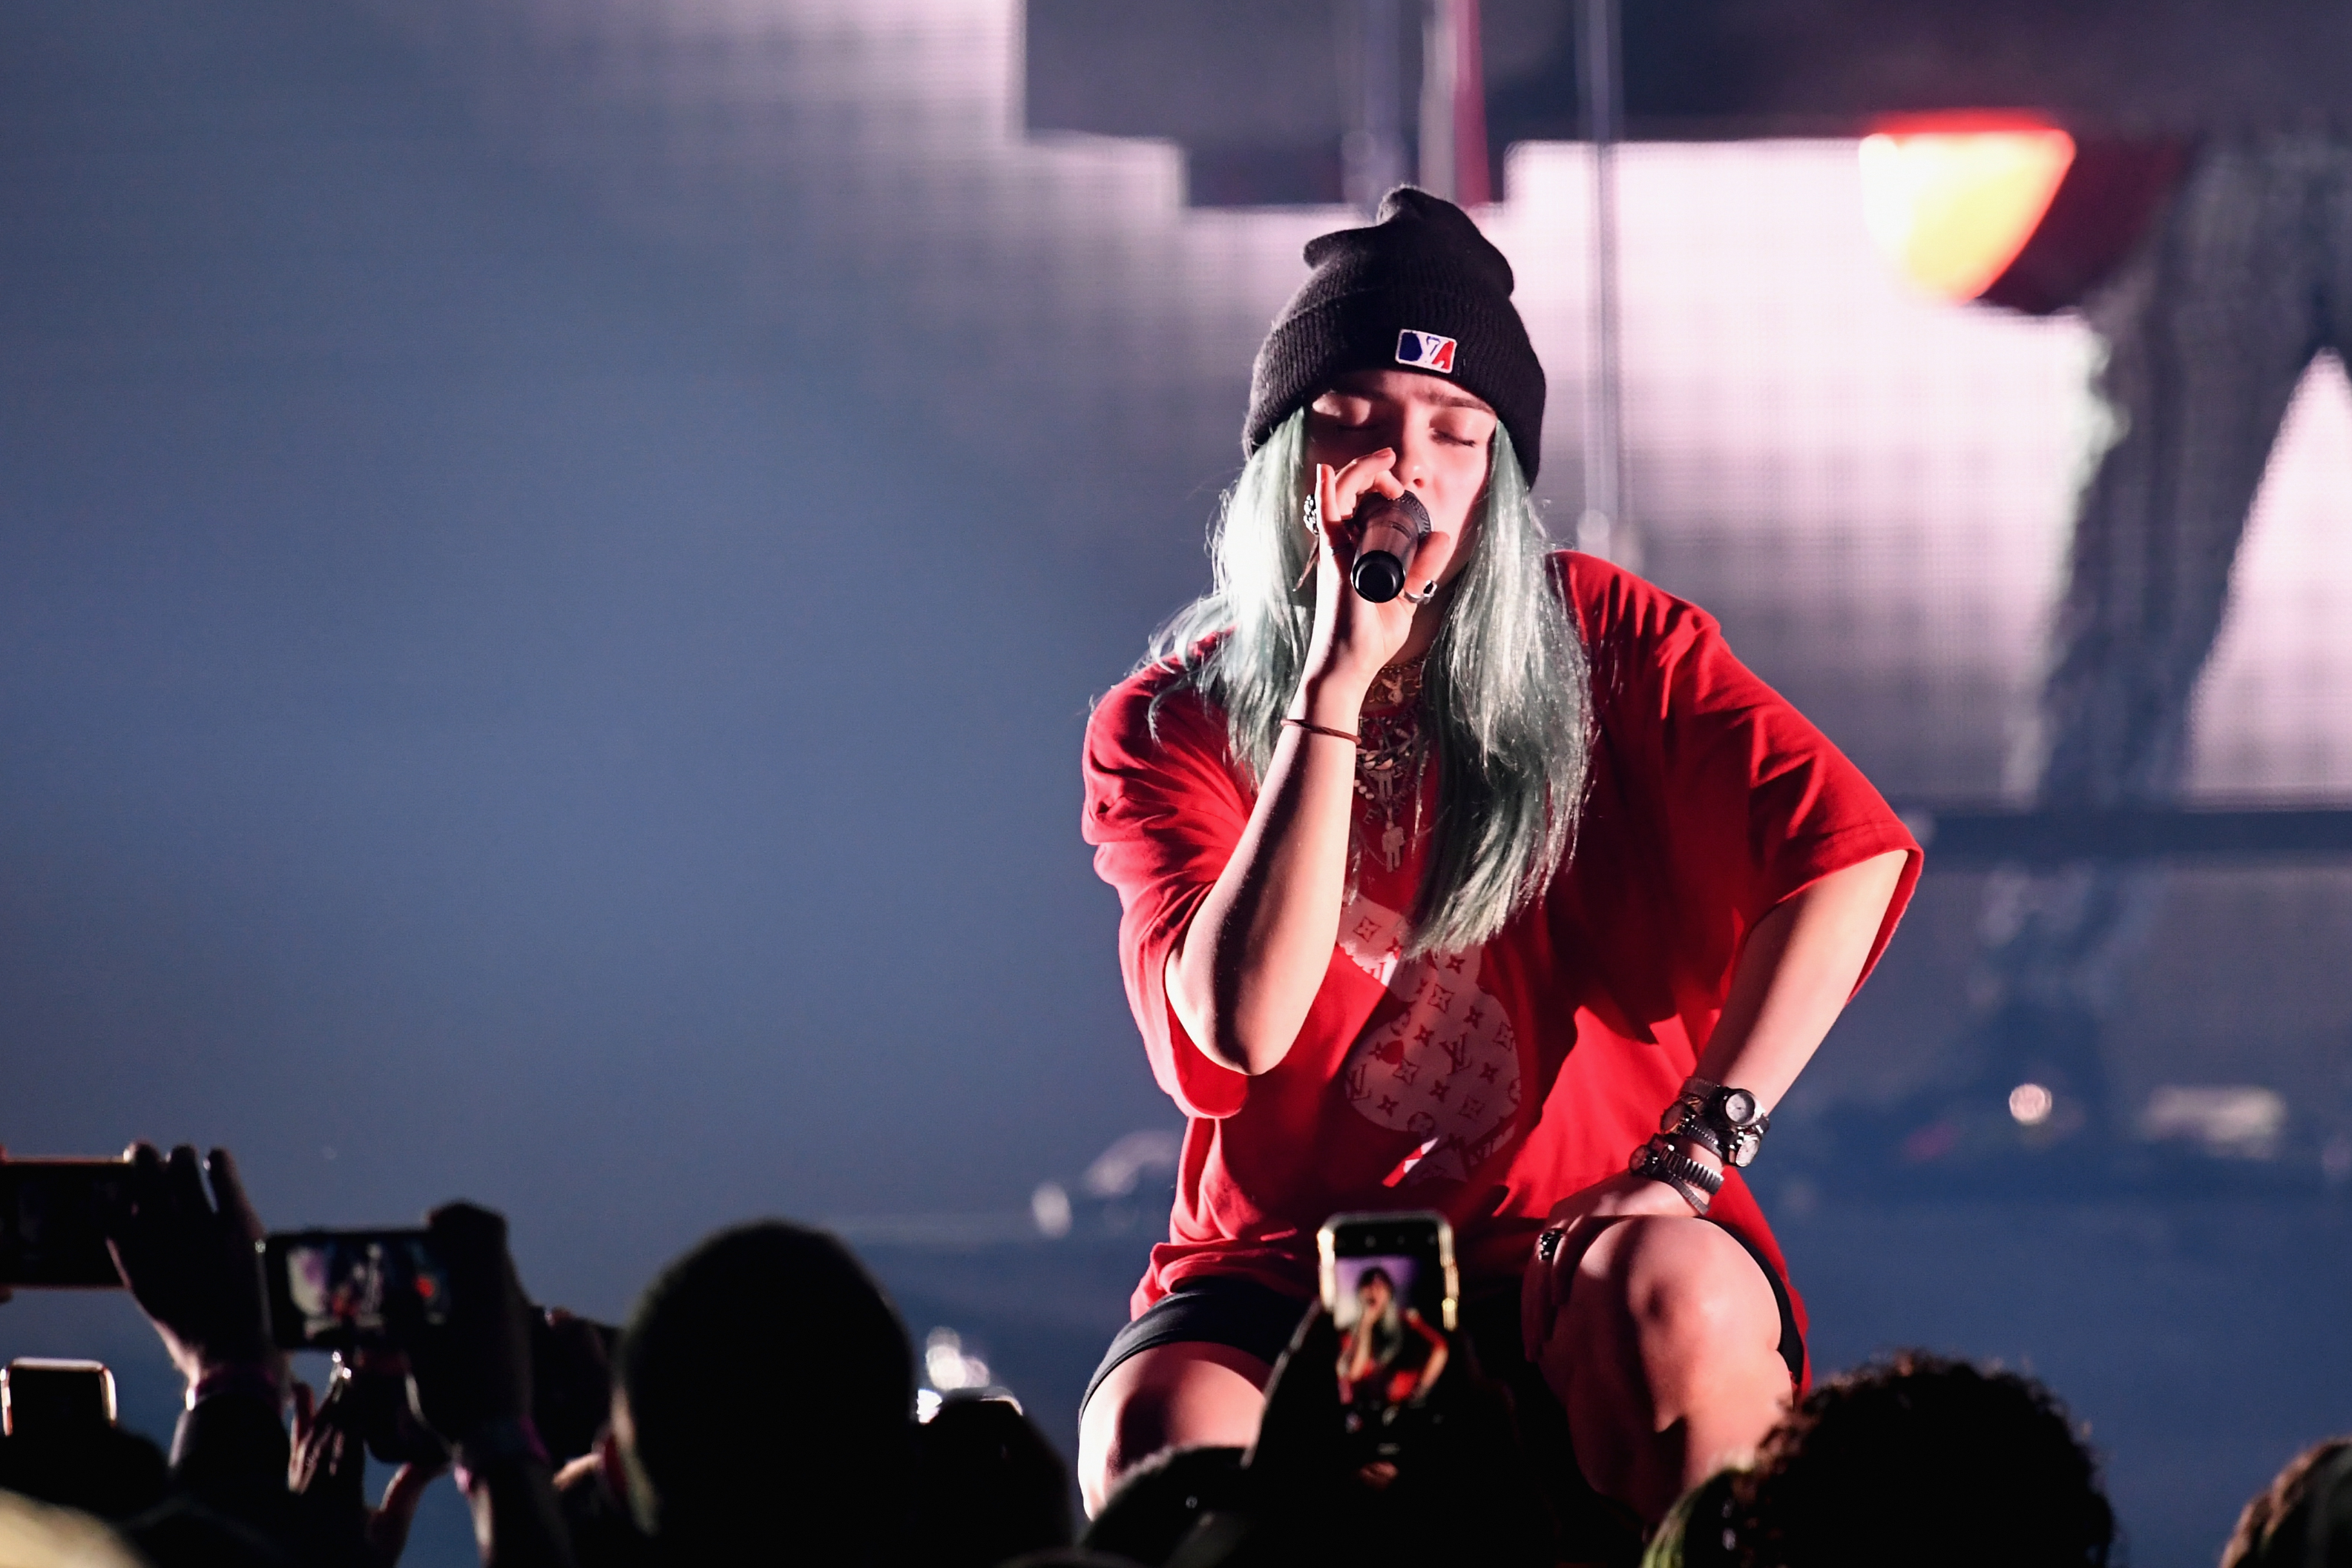 INGLEWOOD, CA - DECEMBER 09:  Billie Eilish performs on stage during KROQ Absolut Almost Acoustic Christmas at The Forum on December 9, 2018 in Inglewood, California.  (Photo by Kevin Winter/Getty Images for KROQ/Entercom)